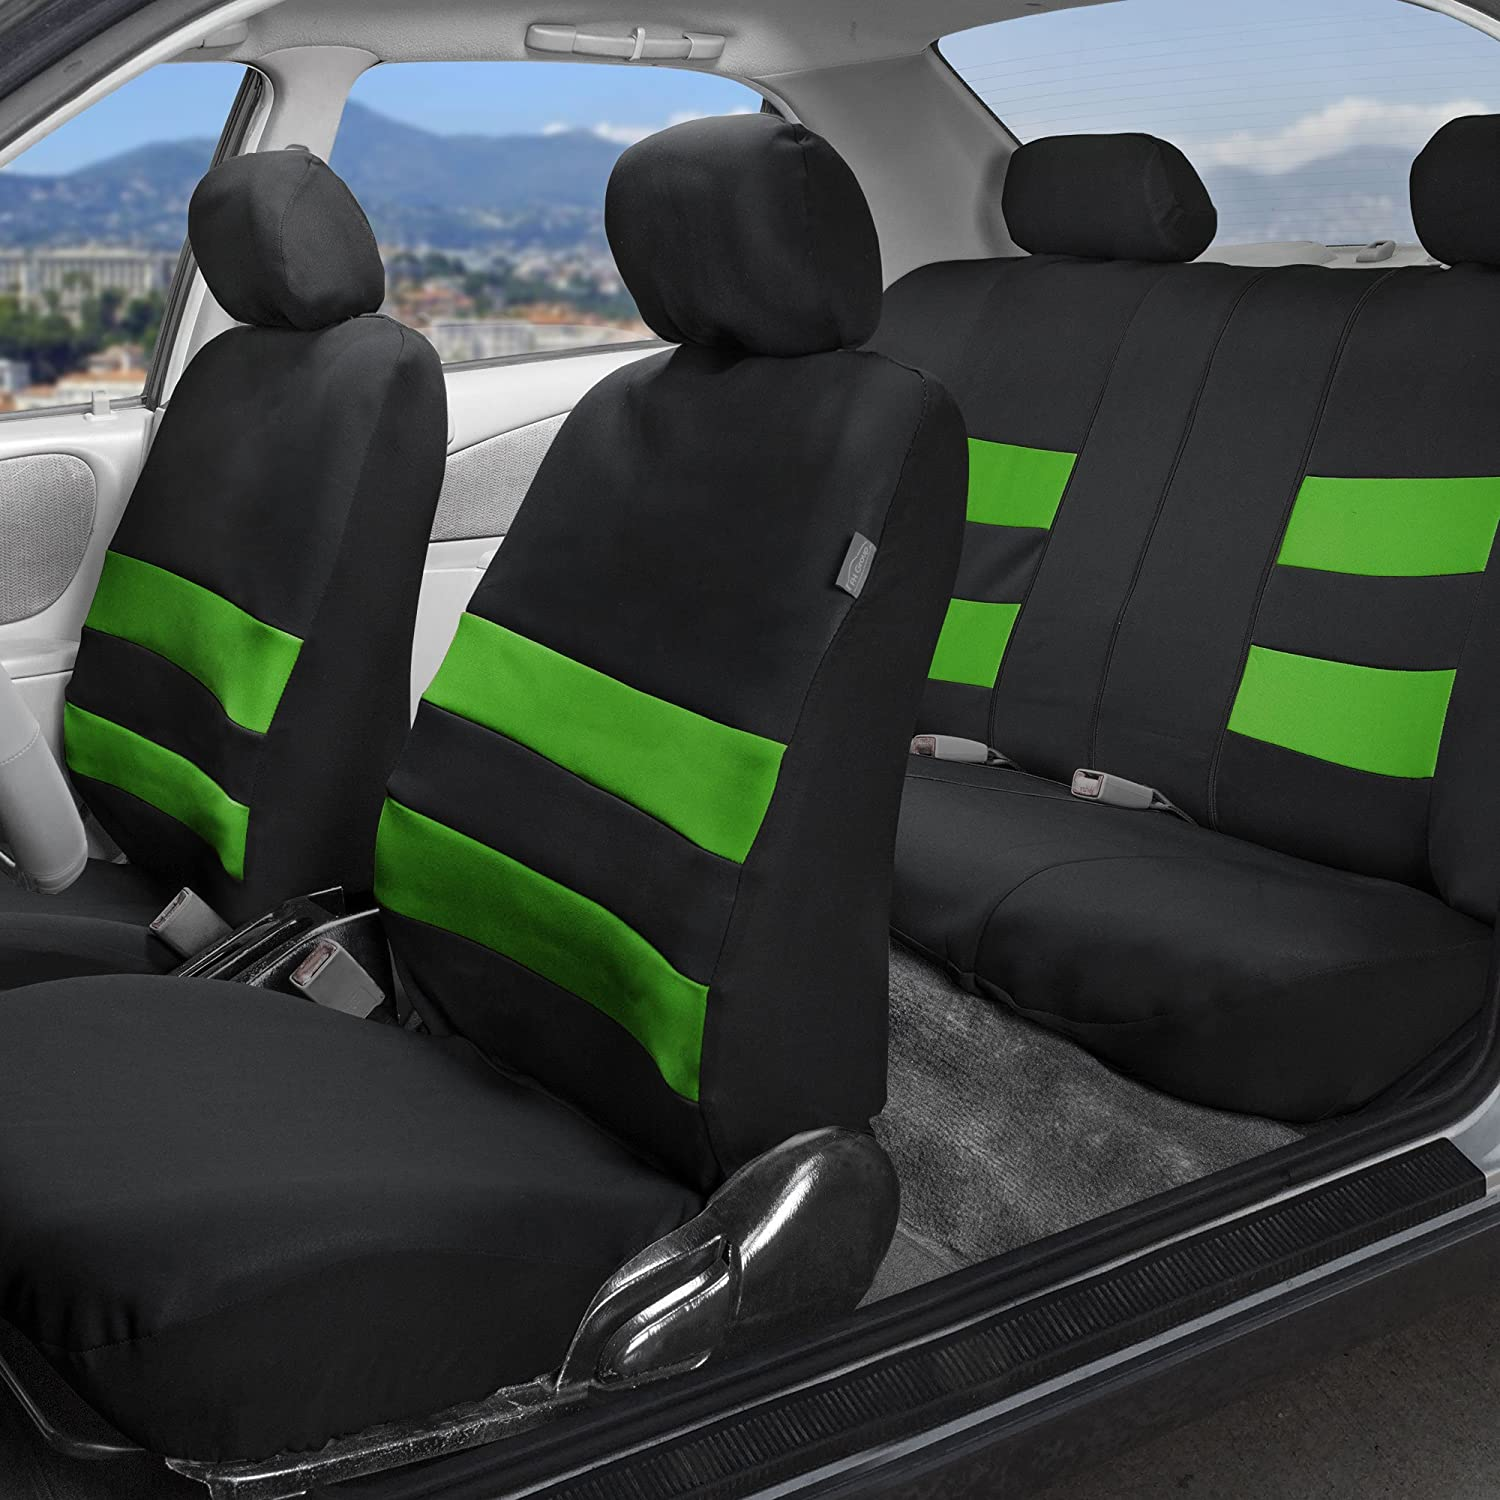 Water Resistent//Airbag//Split Bench Compatible FH Group FB087BLUE115 Blue Premium Neoprene Seat Cover